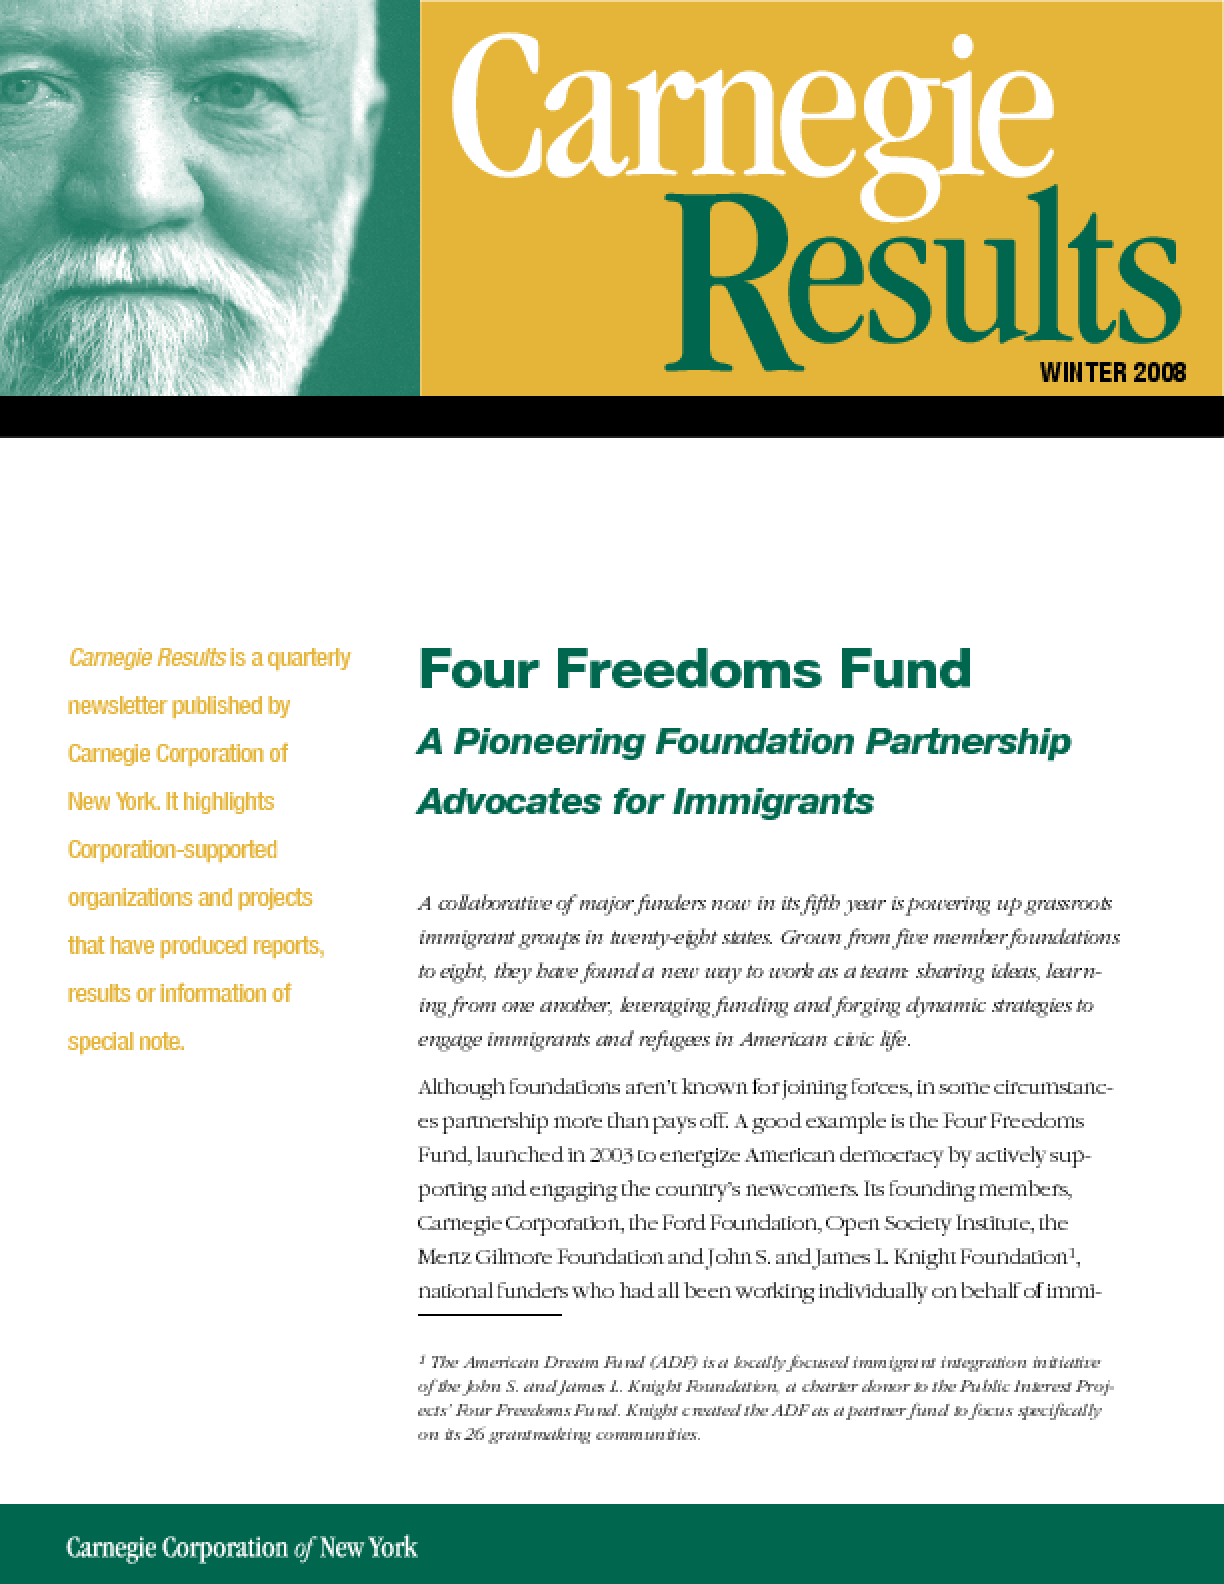 Four Freedoms Fund: A Pioneering Foundation Partnership Advocates for Immigrants